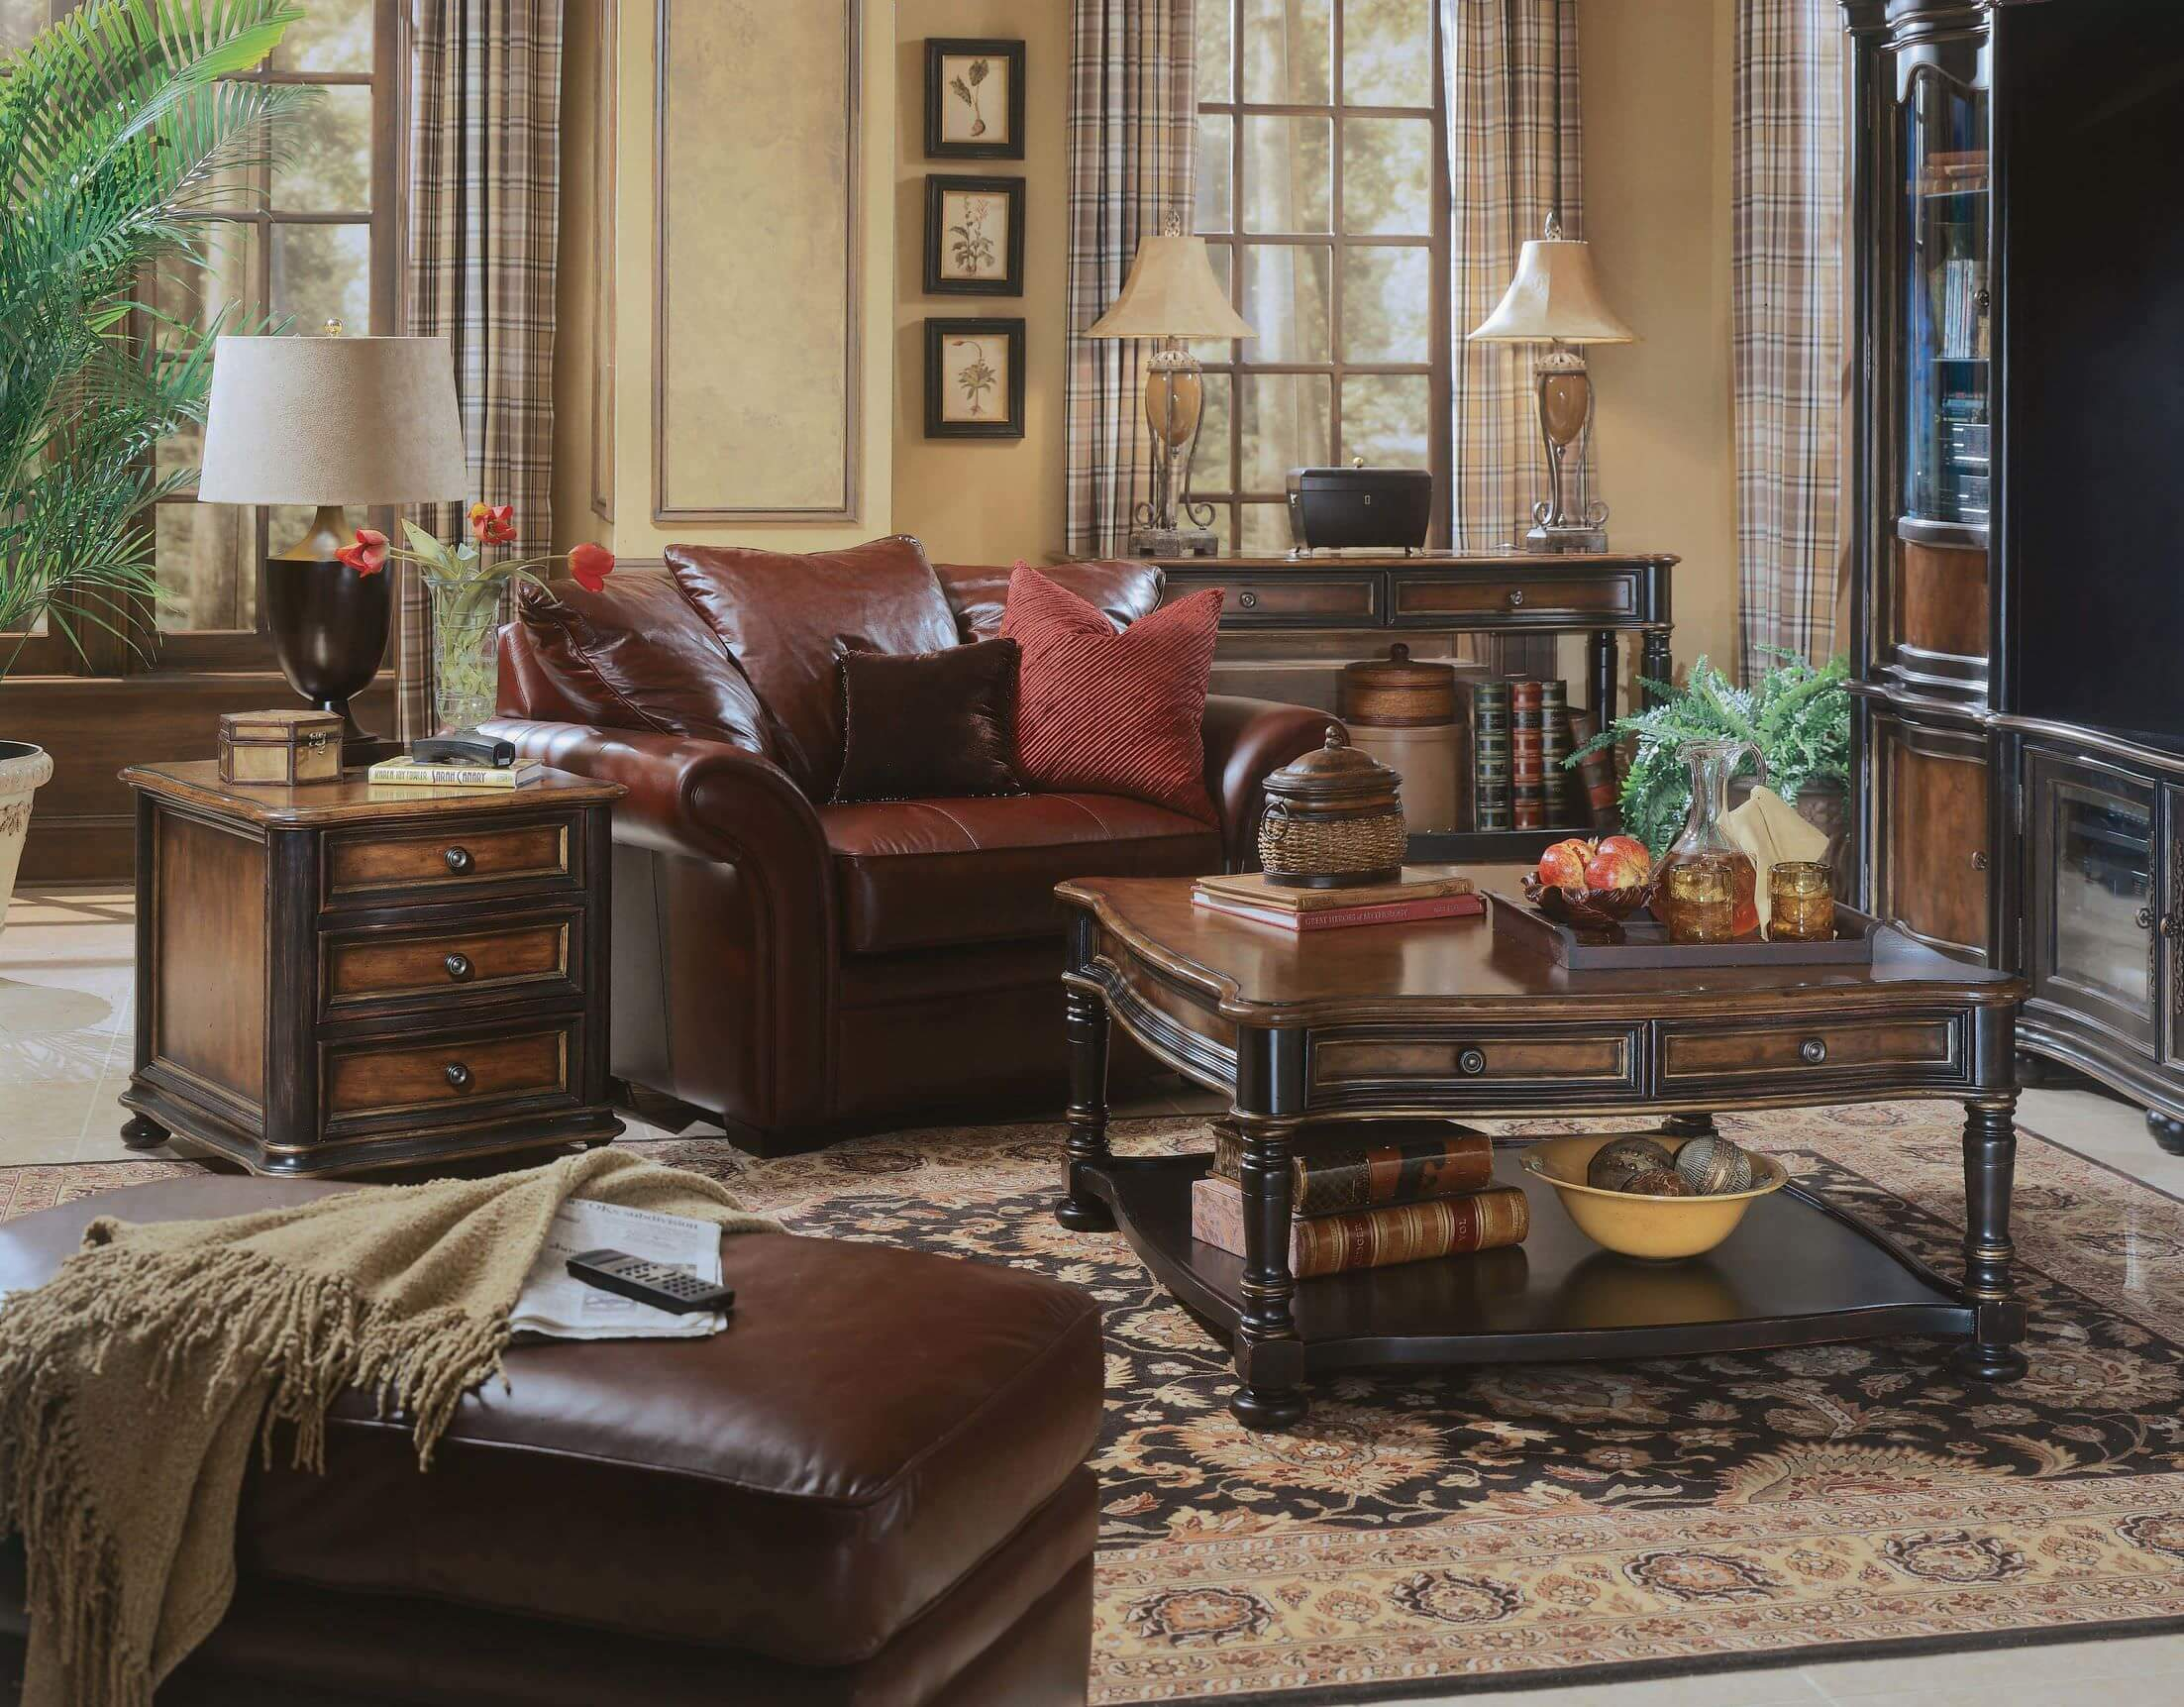 Wooden Brown And Earth Tones If You Want To Give Your Living Room An Antique Feeling Why Not Play With